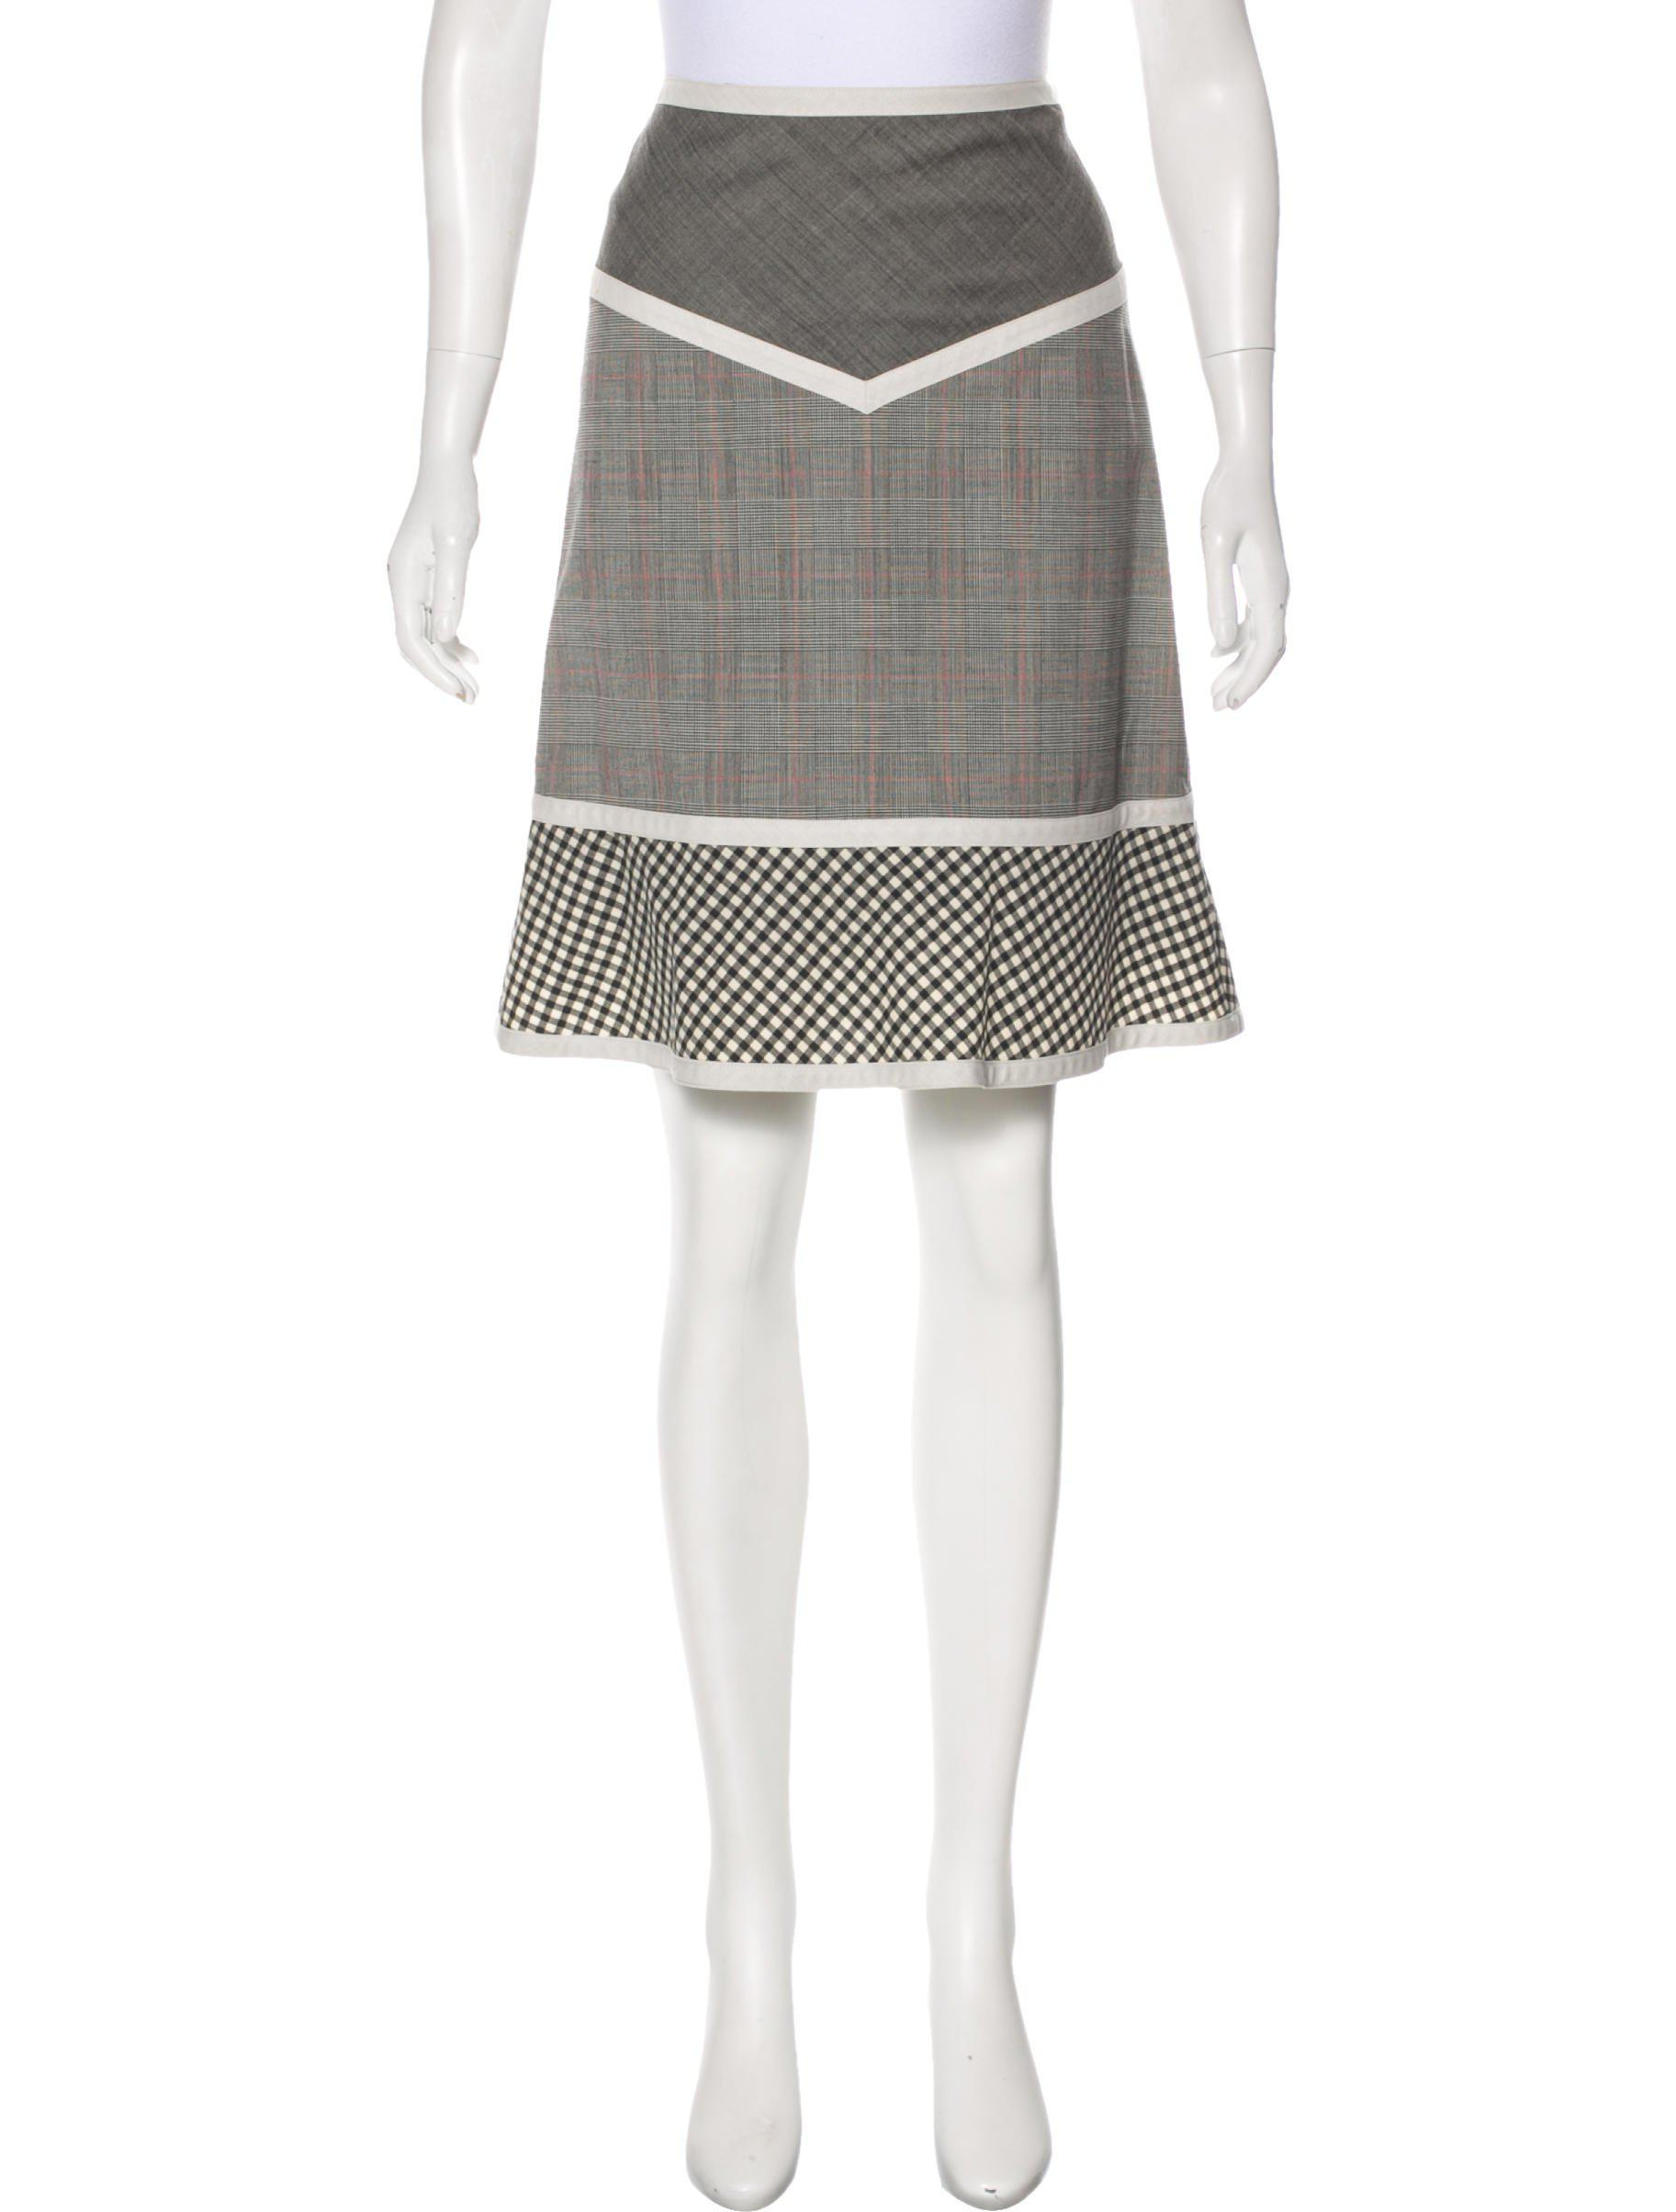 f9f926bfd3 Lyst - Boutique Moschino Patterned Knee-length Skirt Grey in Gray